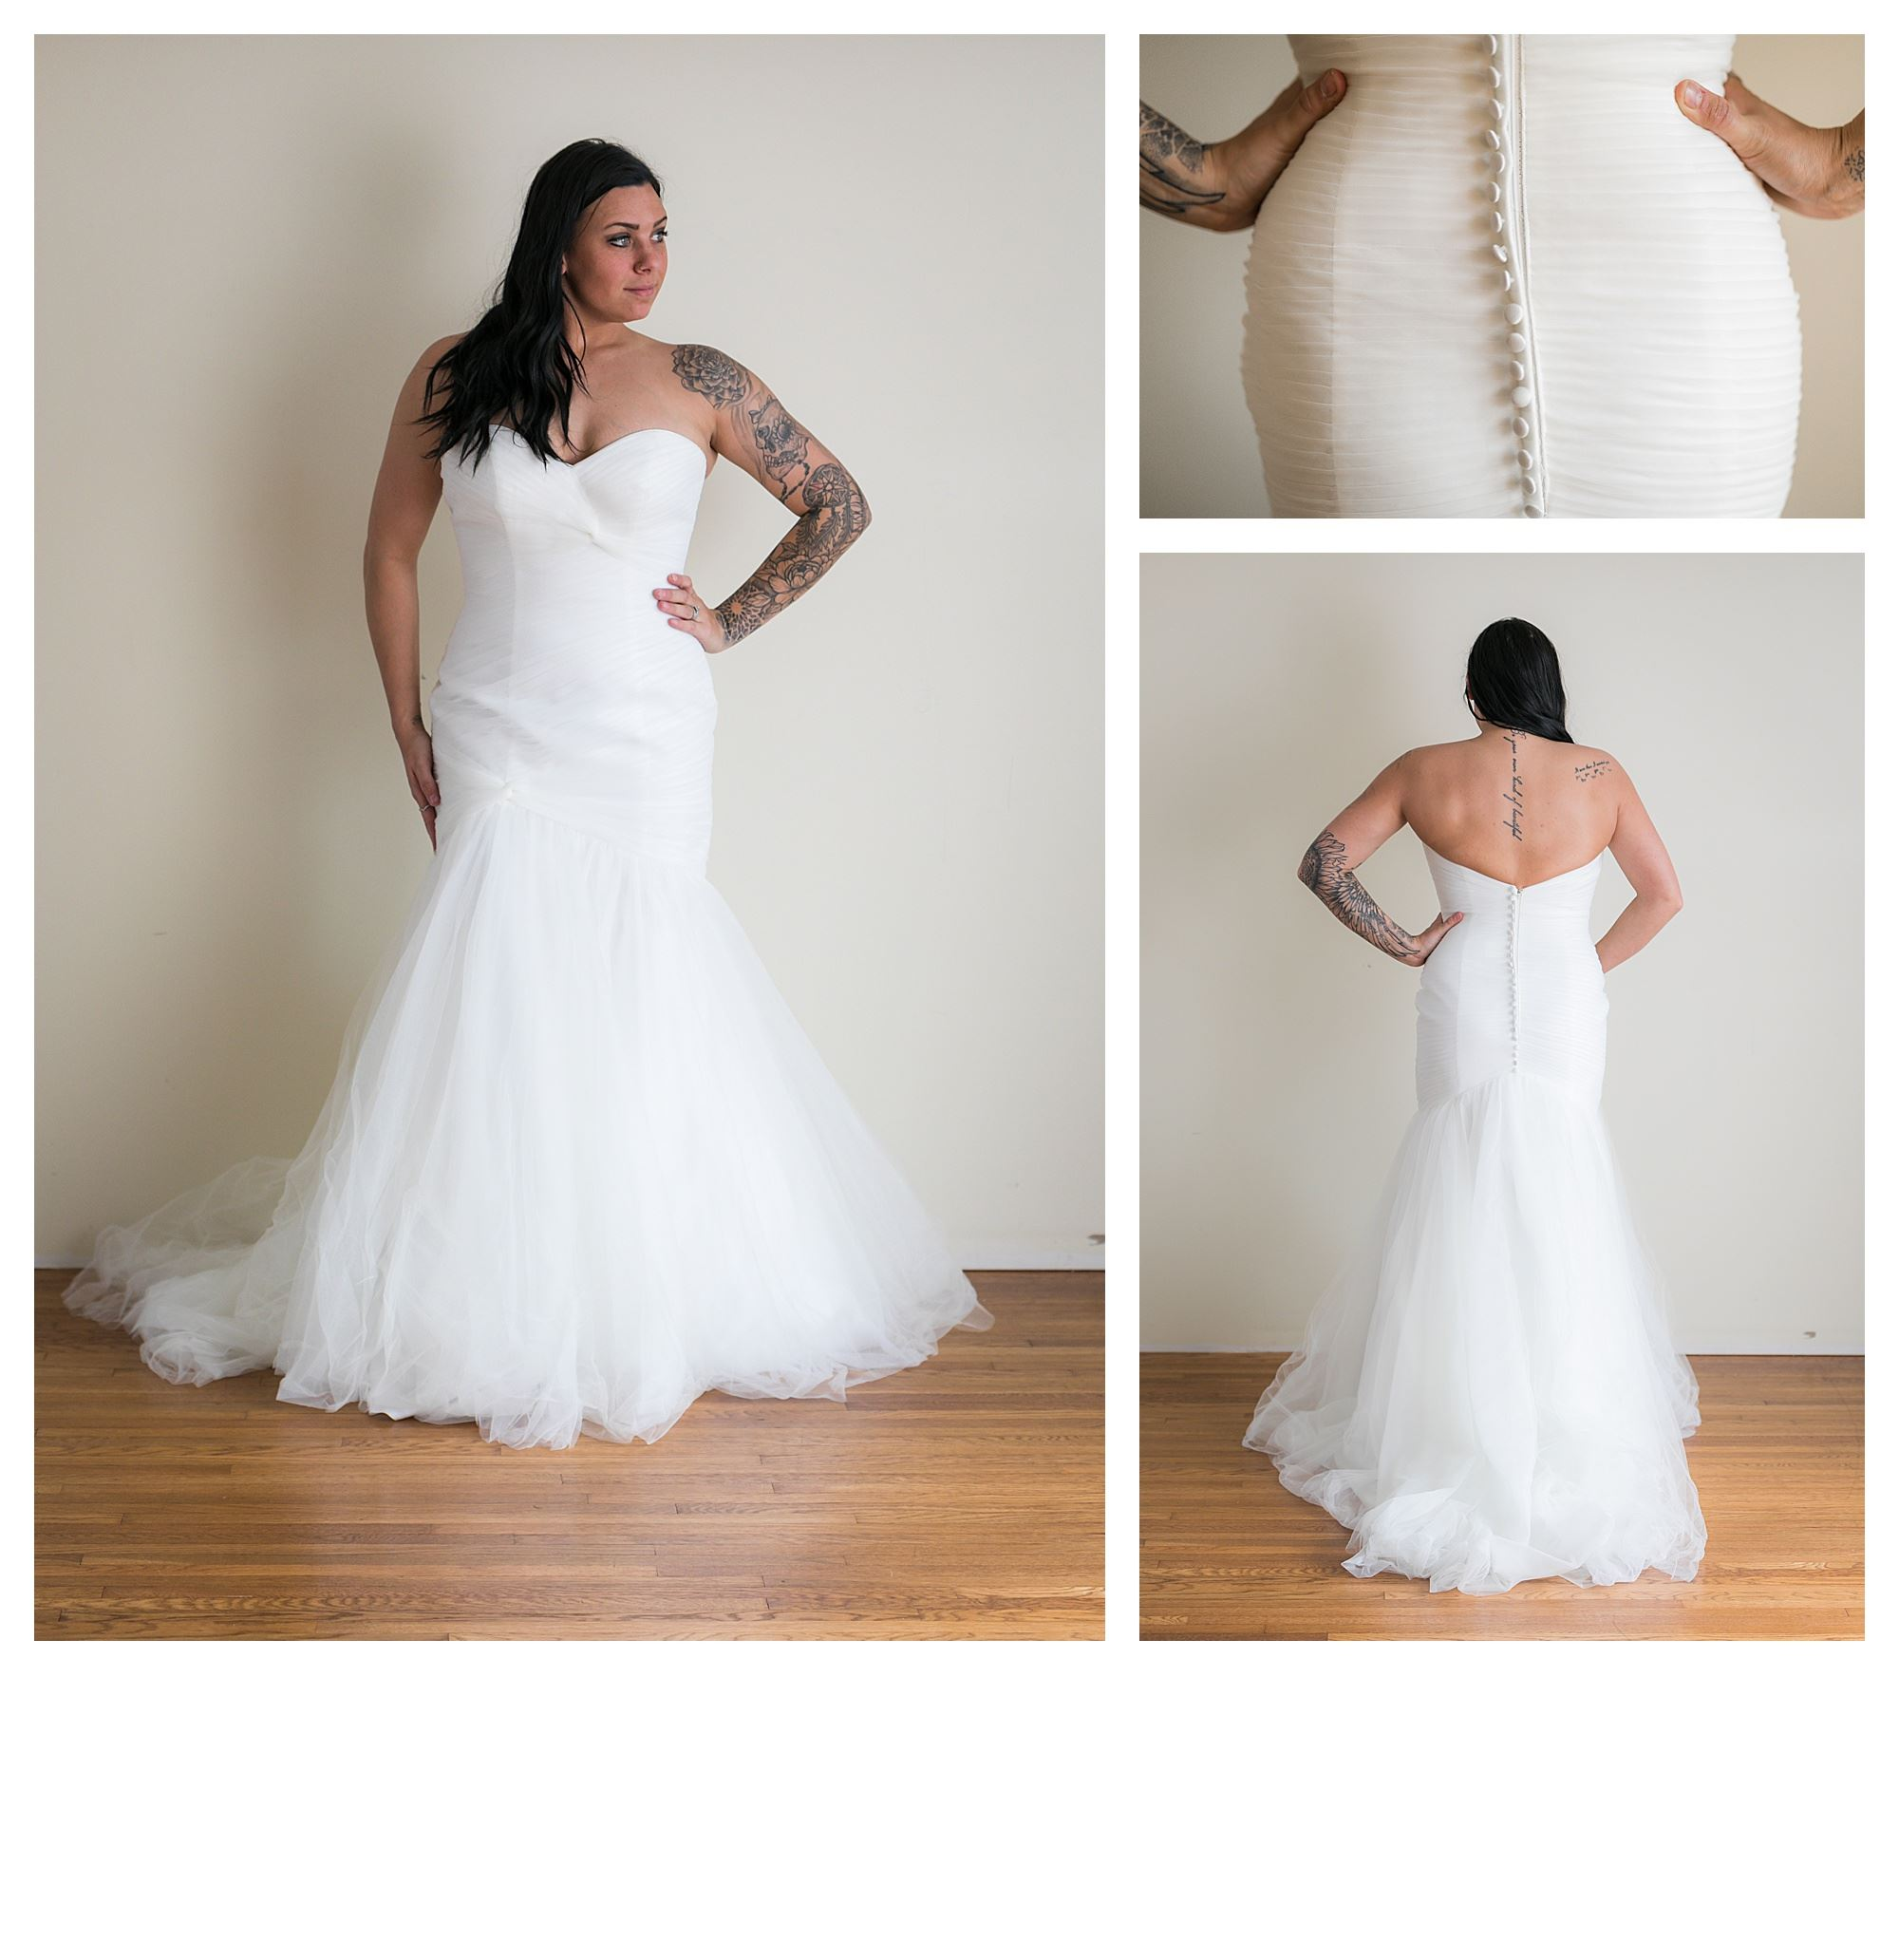 Soraya - Size 12 - Ivory - Originally priced $999 - Sample box price $699